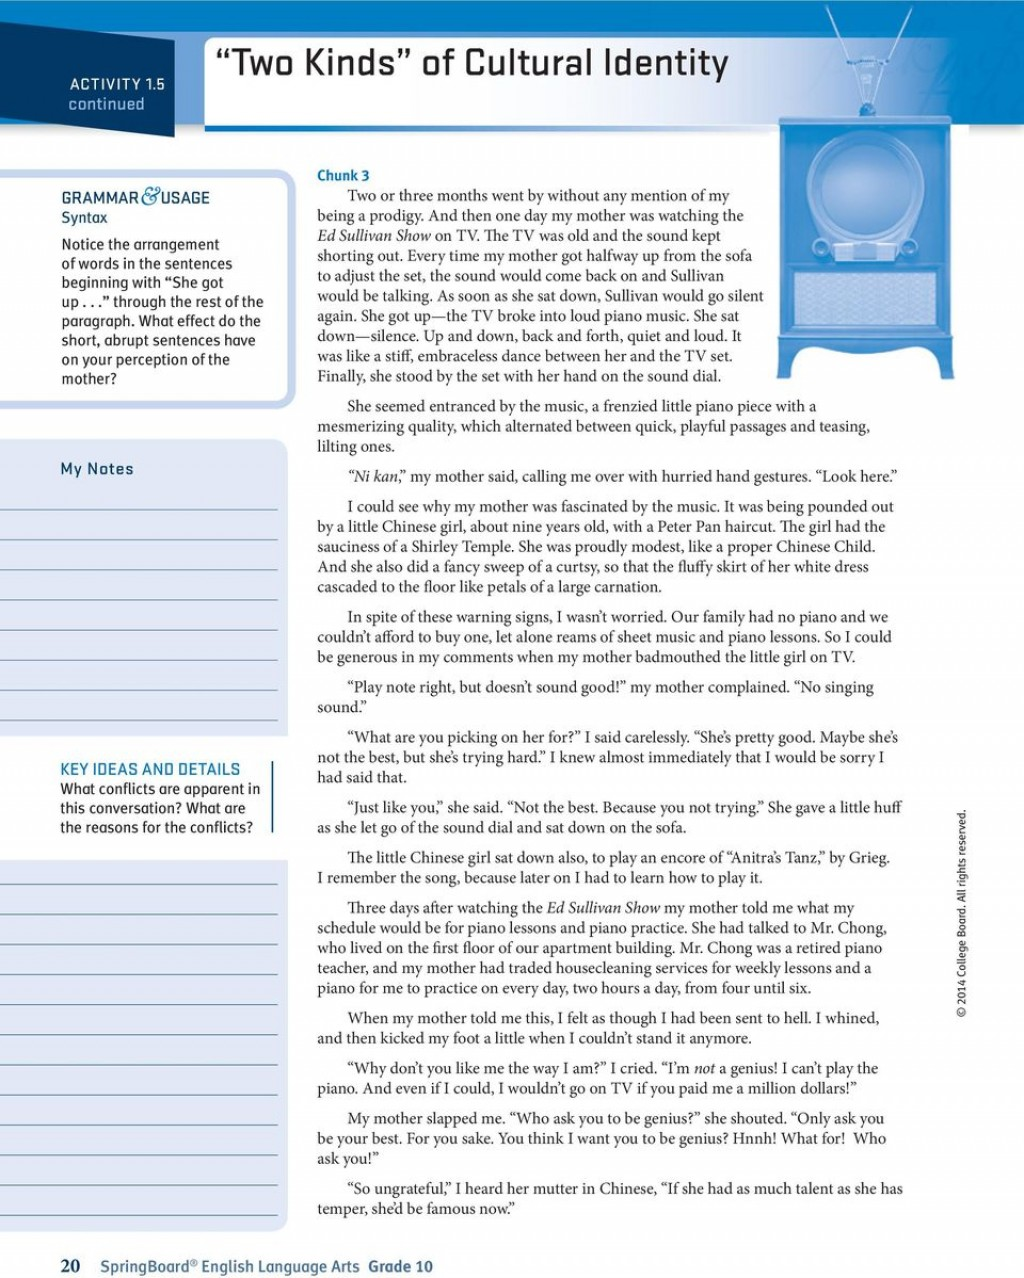 009 Essay Example Where Worlds Collide Pico Iyer Summary Page 20 Top Large